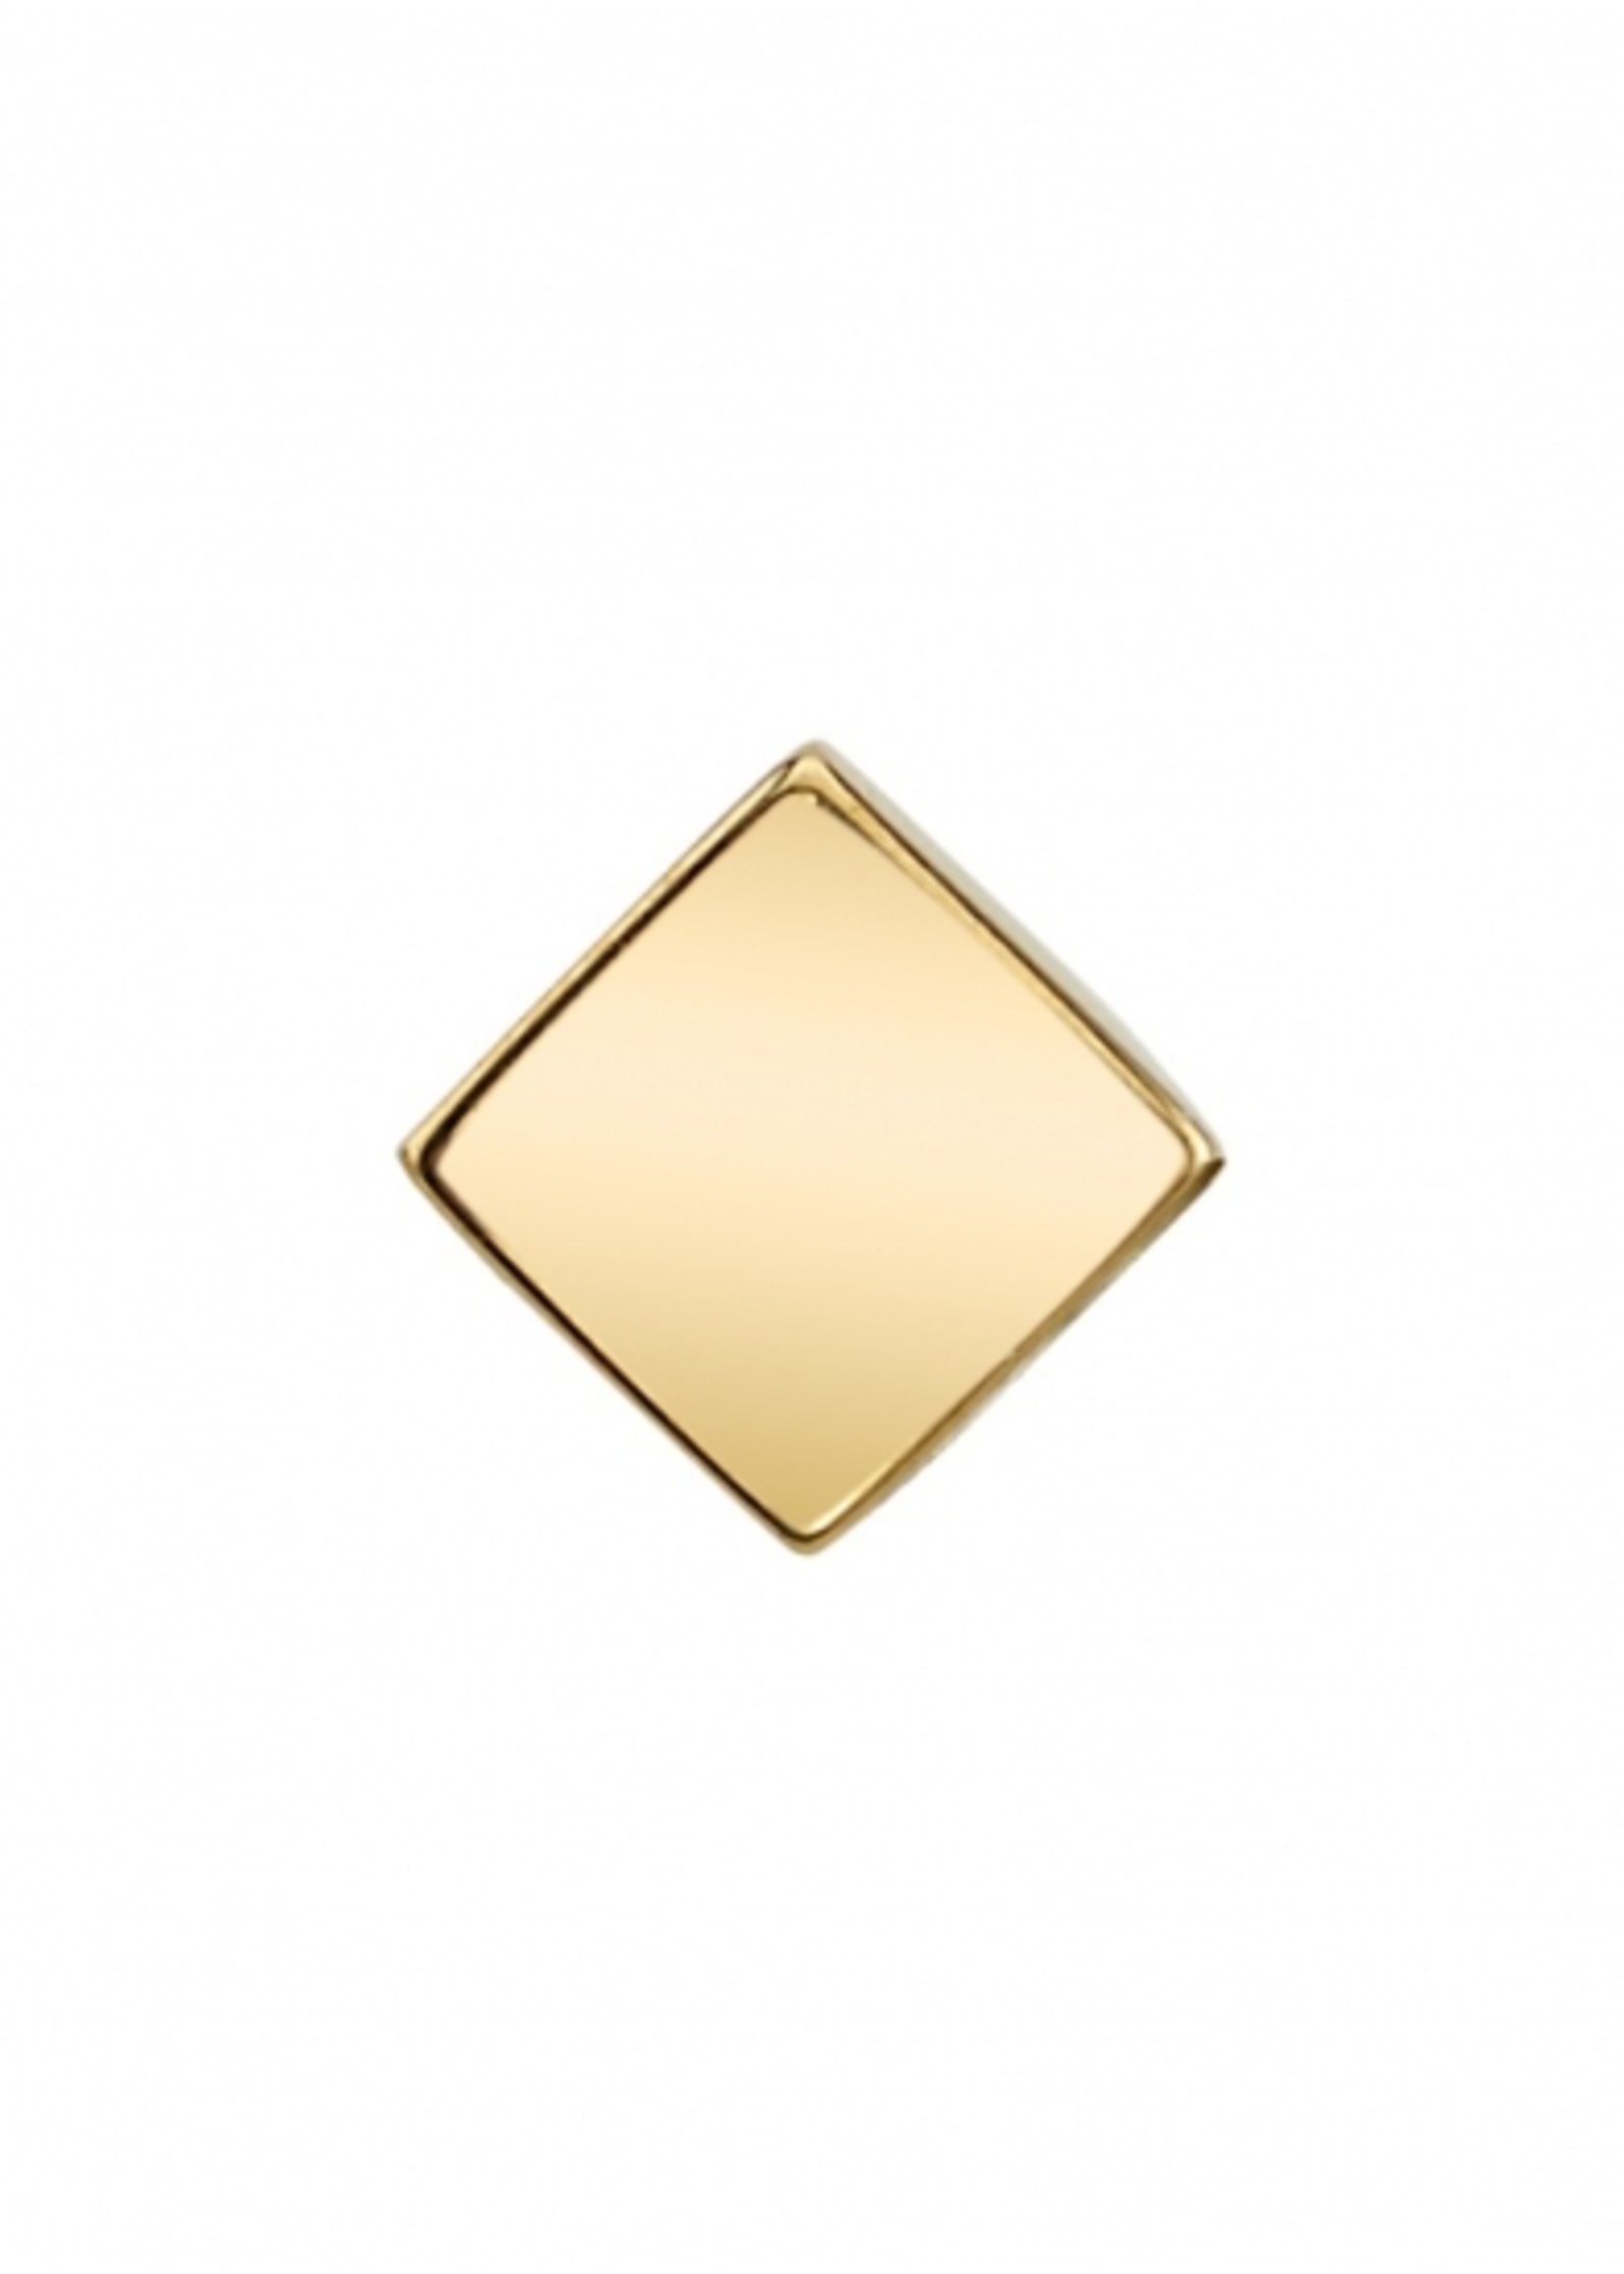 14k YG 2mm Mini Flat Square End